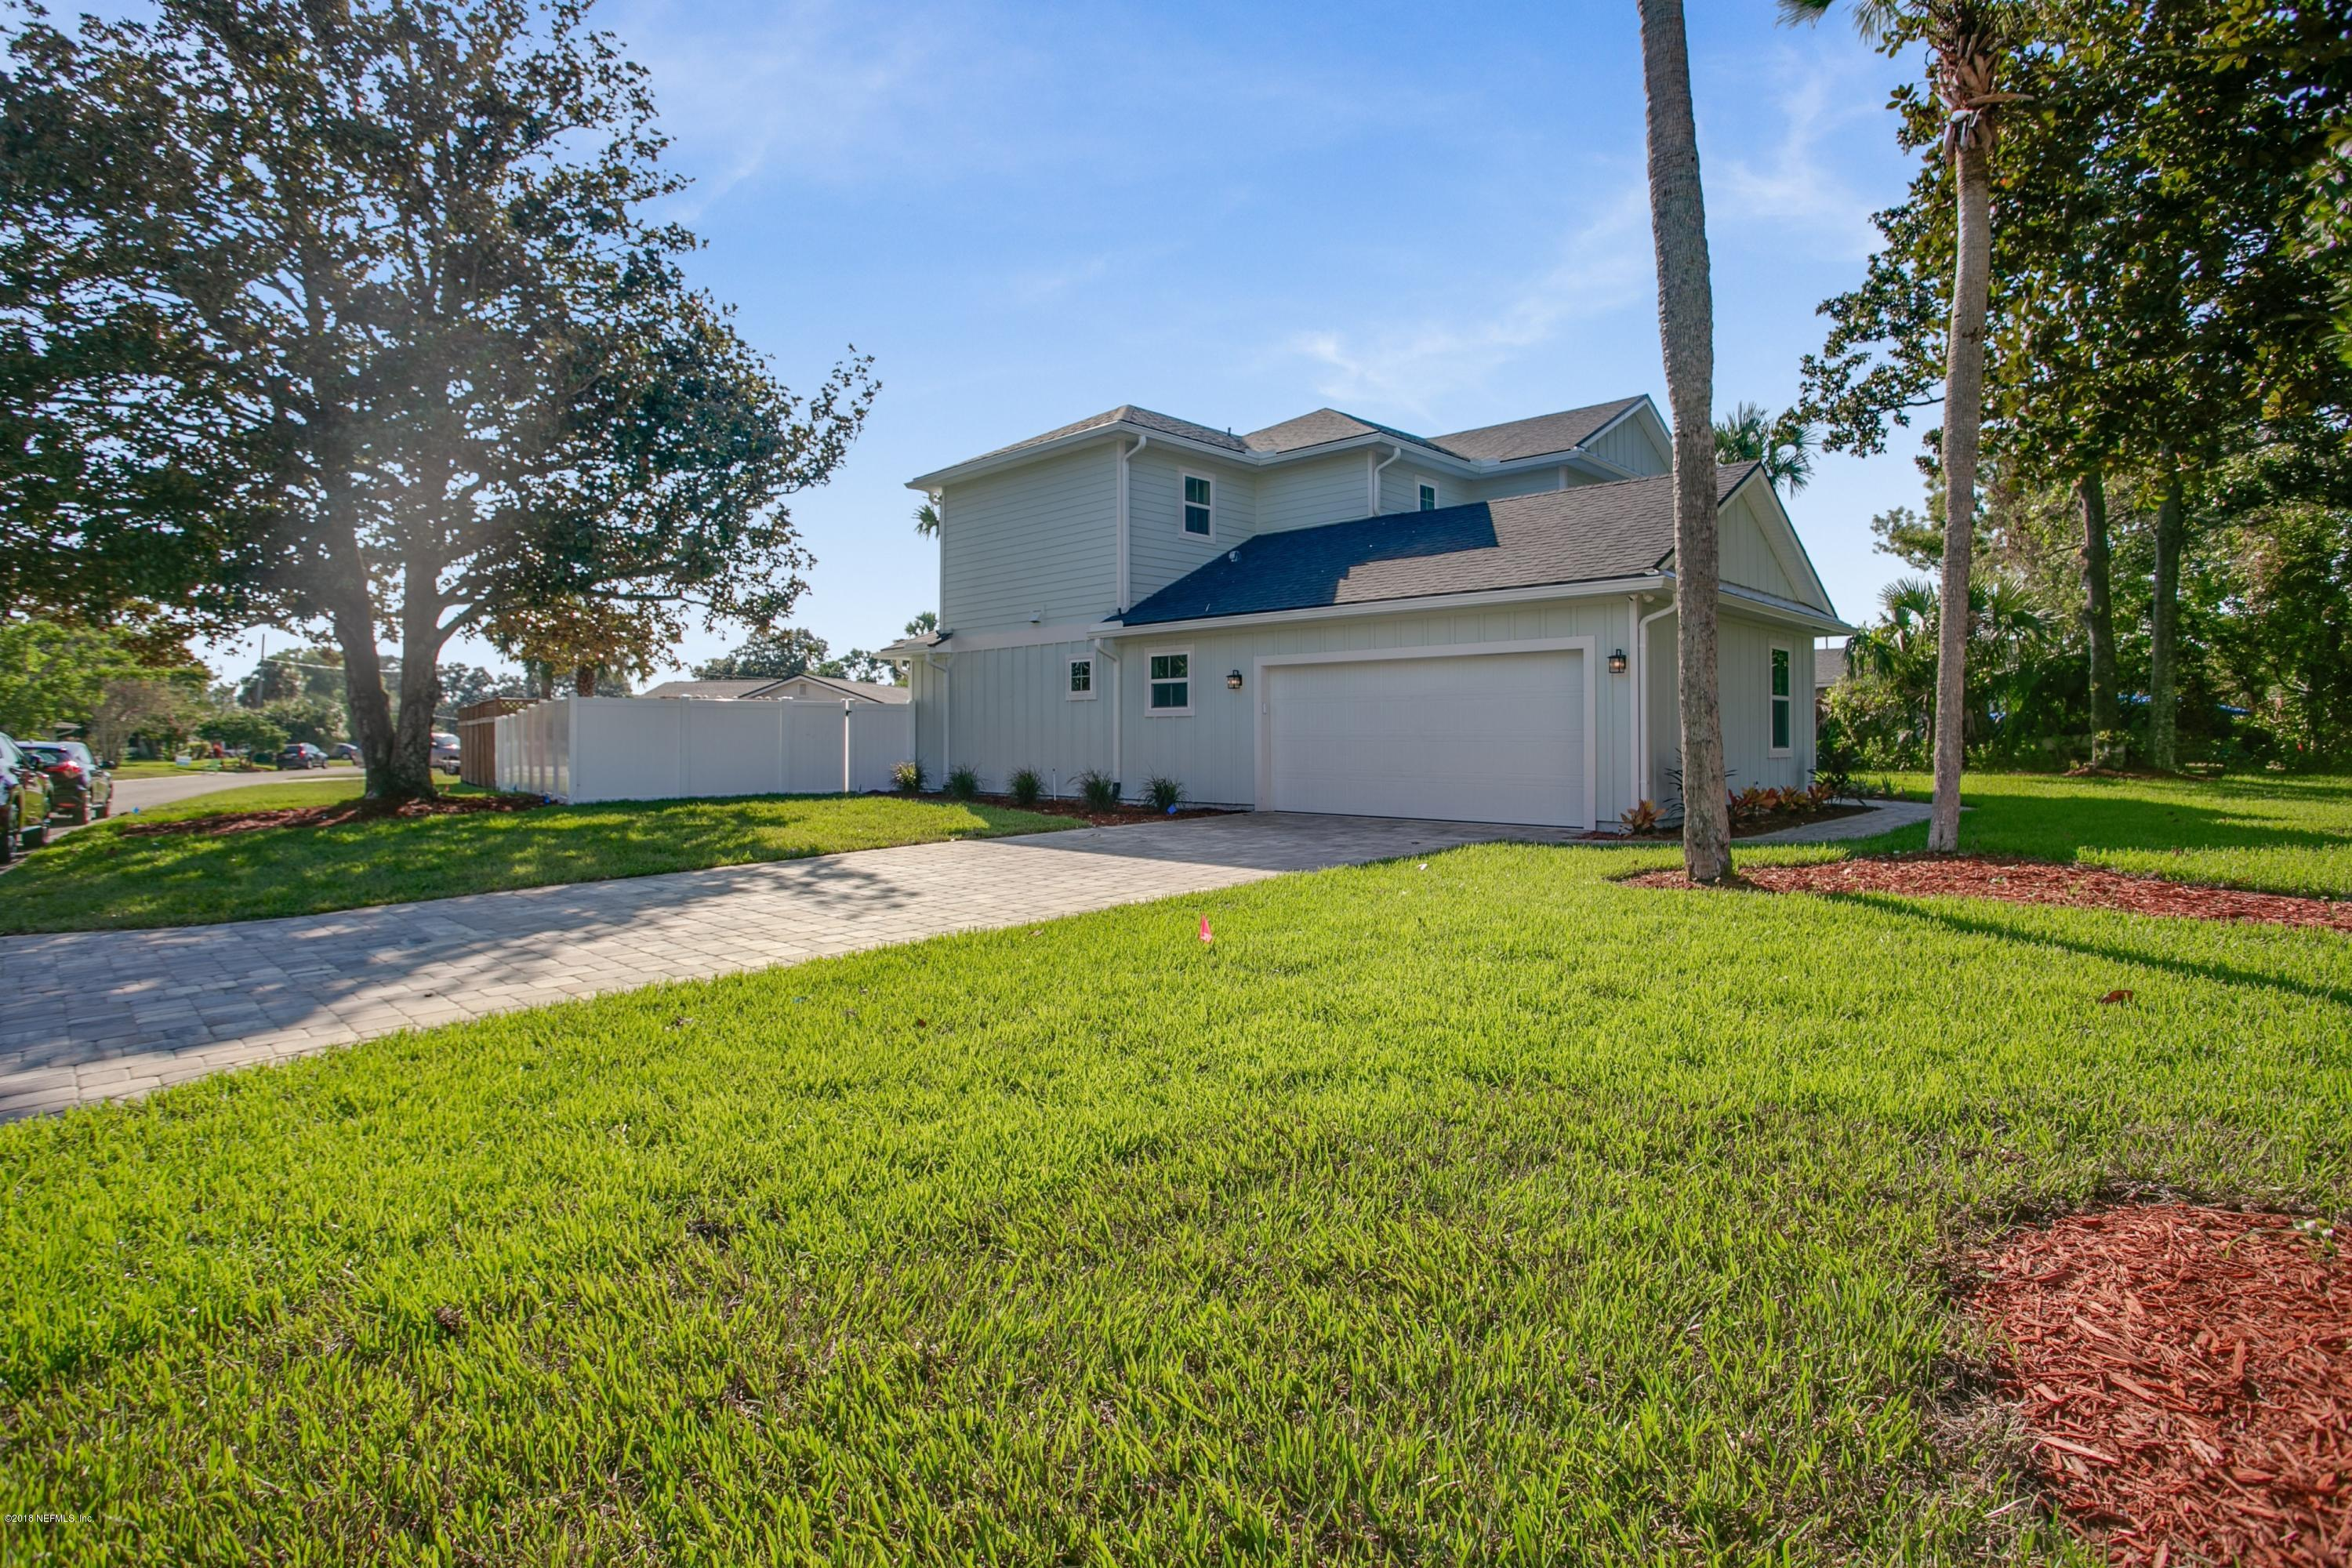 1443 10TH, JACKSONVILLE BEACH, FLORIDA 32250, 4 Bedrooms Bedrooms, ,3 BathroomsBathrooms,Residential - single family,For sale,10TH,948016